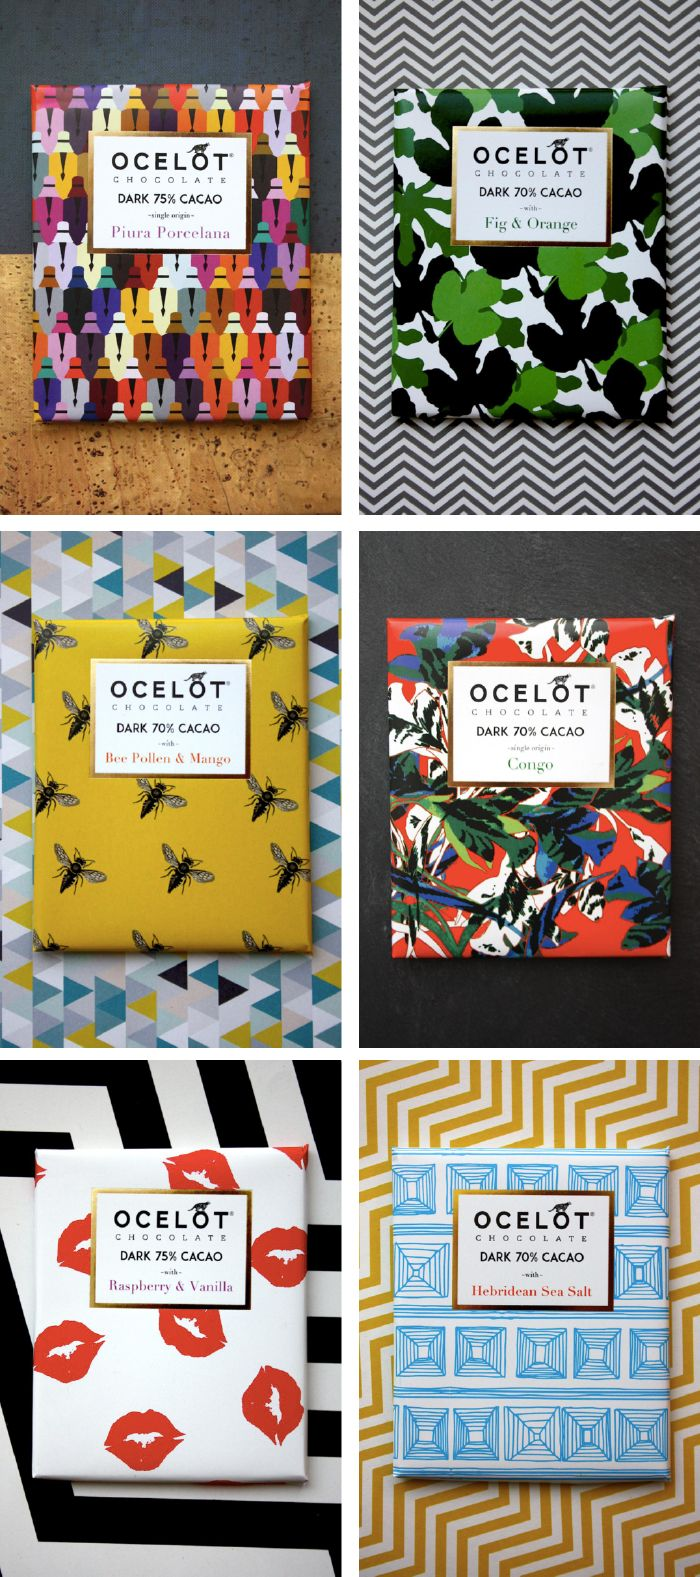 Ocelot Chocolate Bars: I like the patterns & the typo details